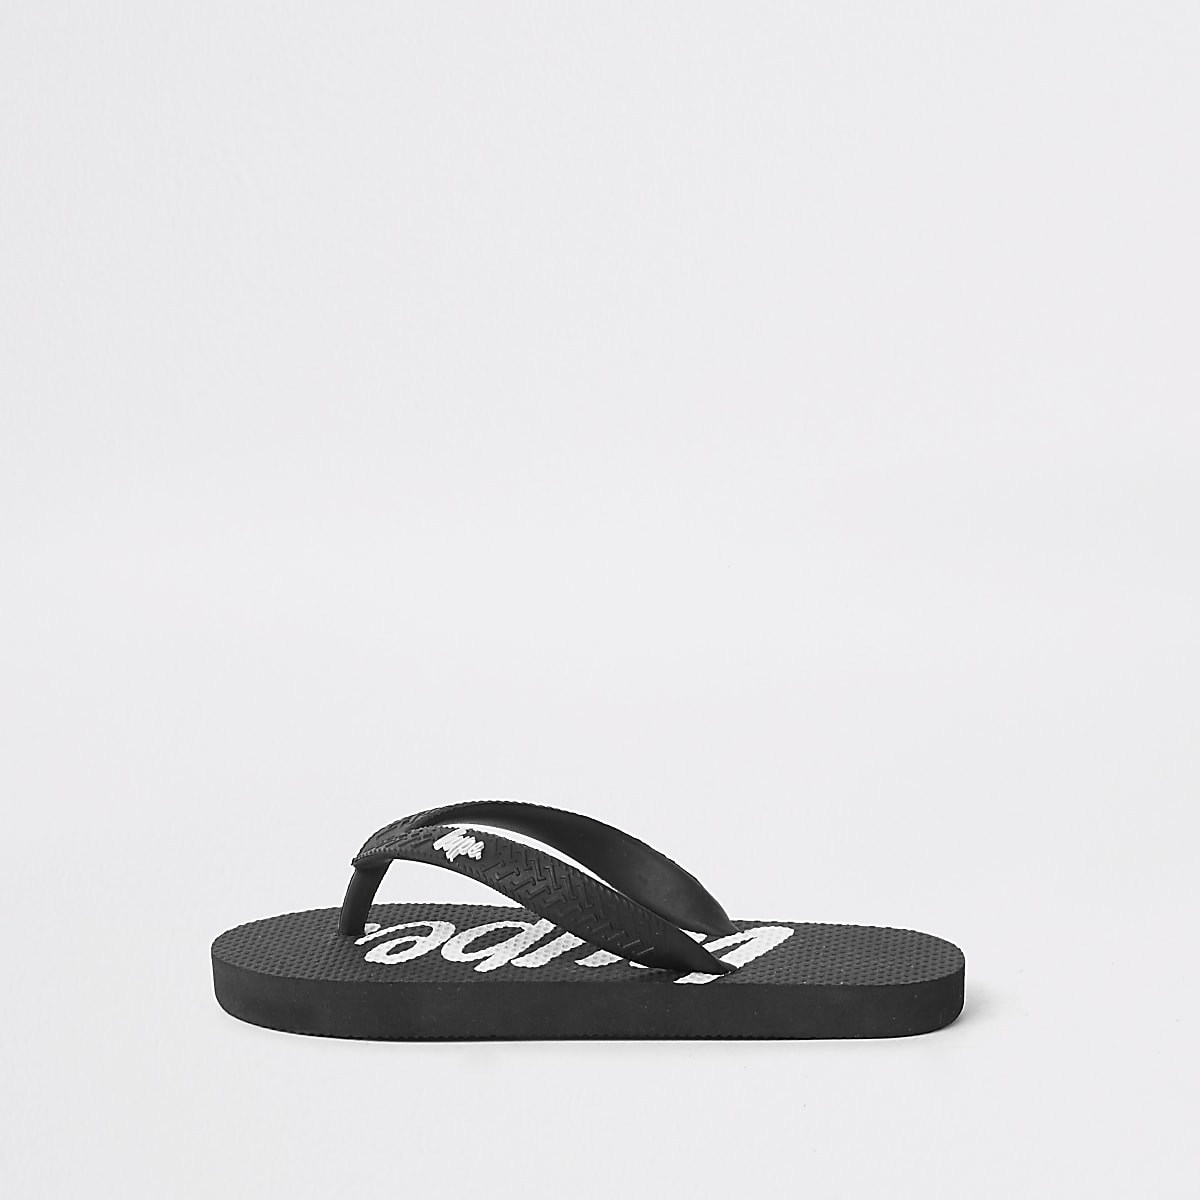 Kids Hype black flip flops